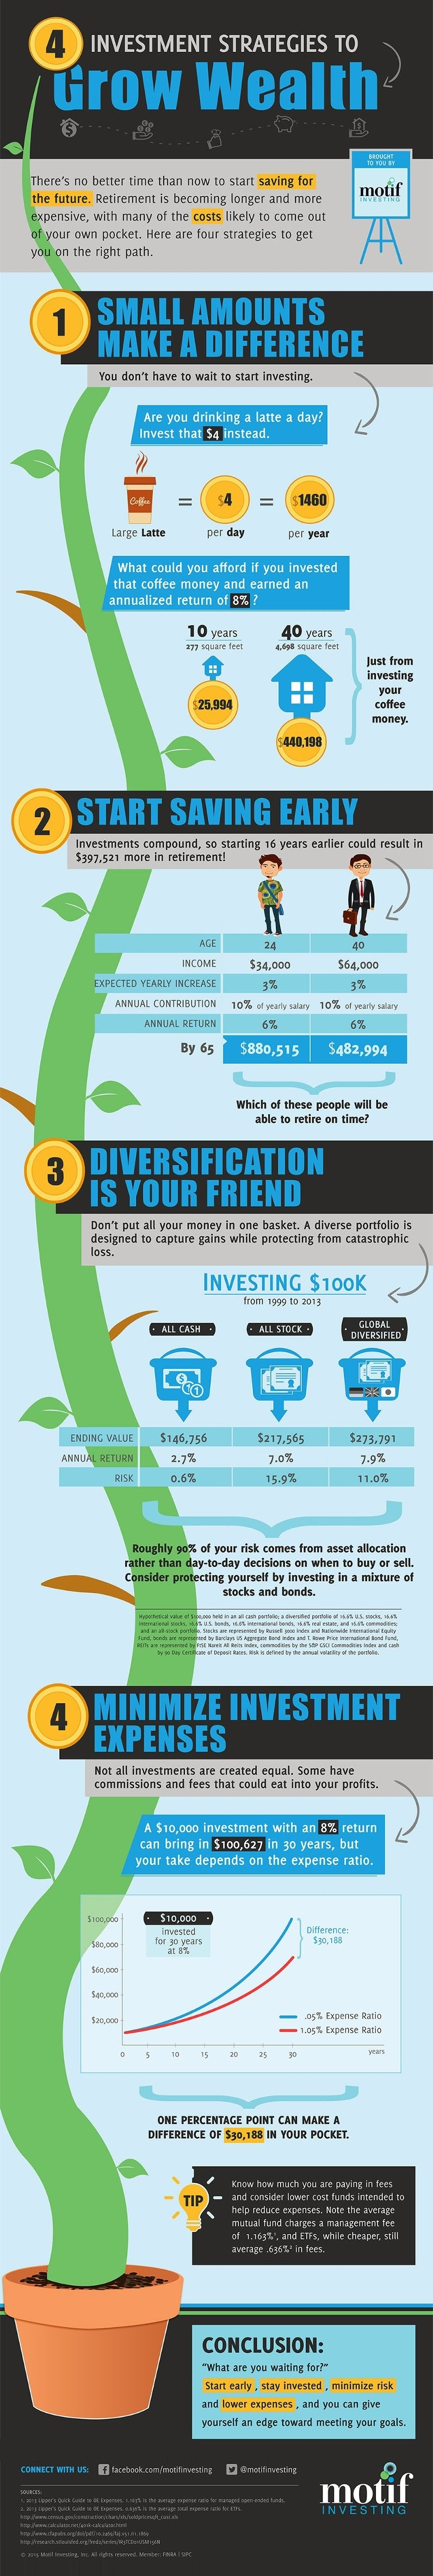 With Investing, Little Things Make a Big Difference The difference between good and great is often found in the details. As discussed in this infographic, a few little ideas can make a big difference in the long run.